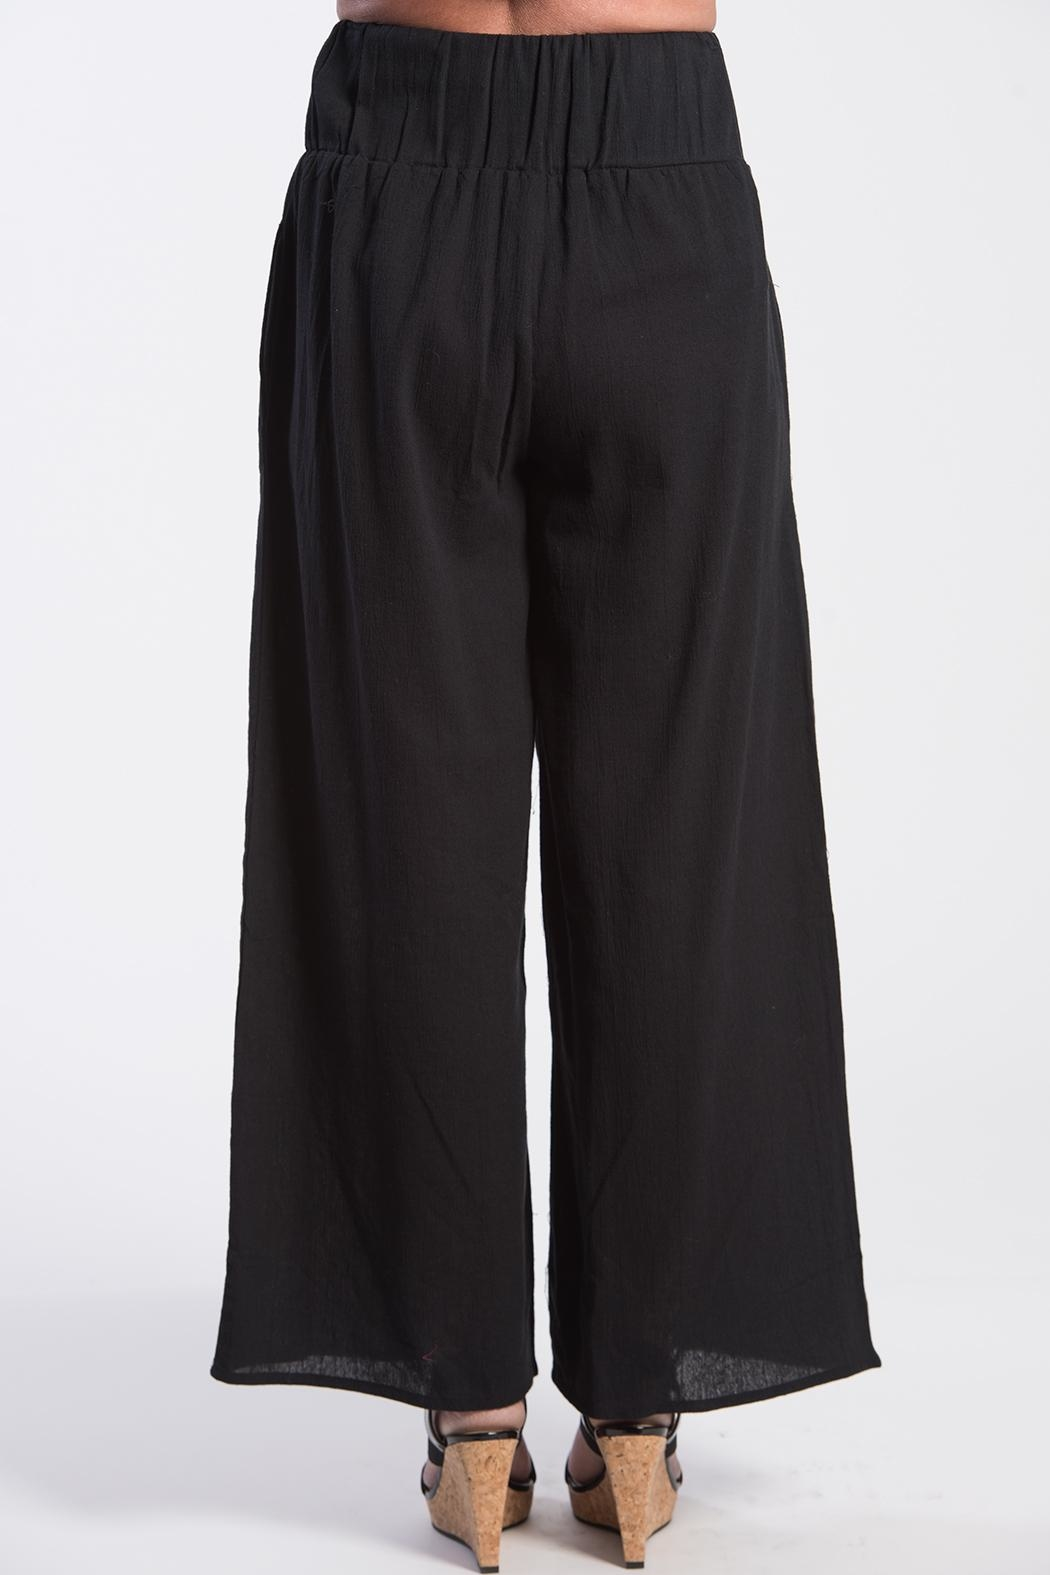 BK Moda Turkish Cotton Pant - Front Full Image